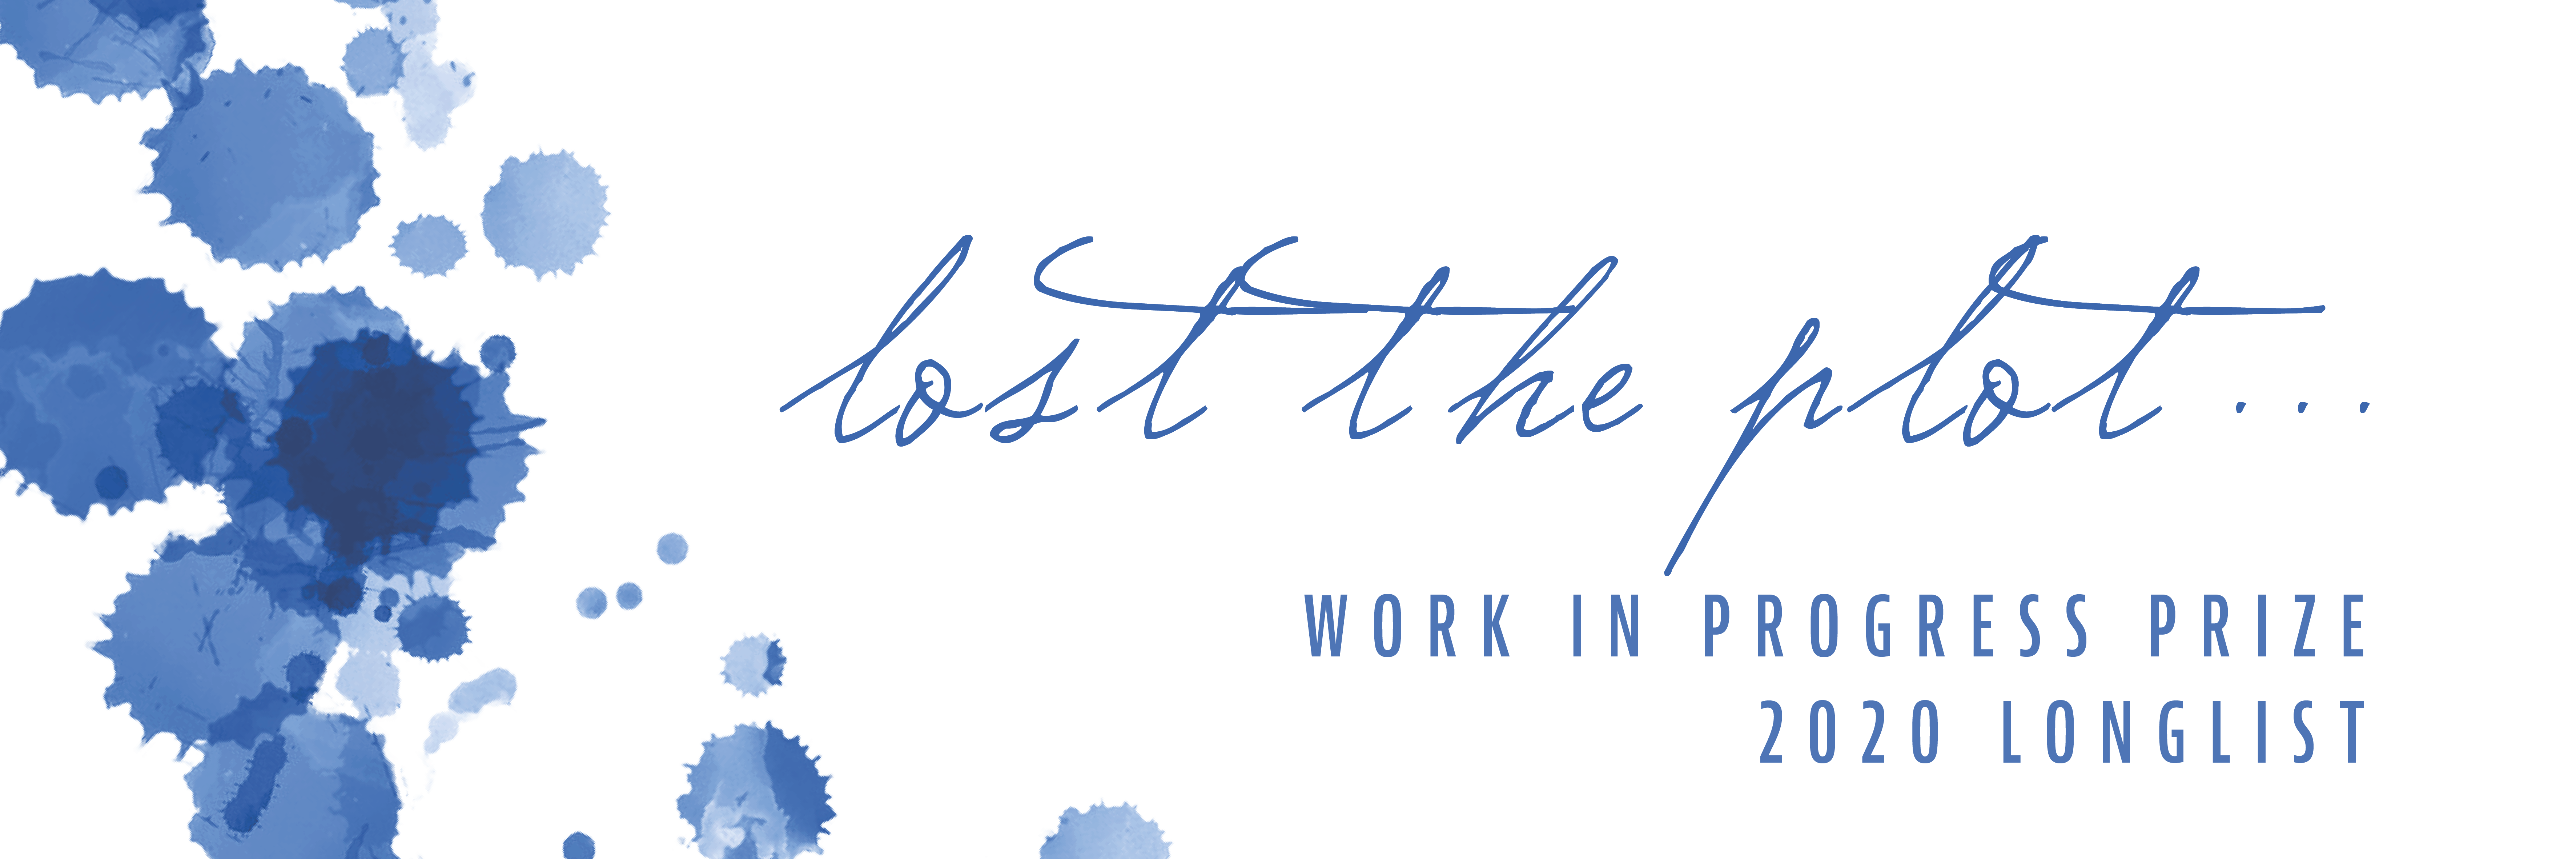 Lost the Plot Work in Progress Prize 2020 Longlist